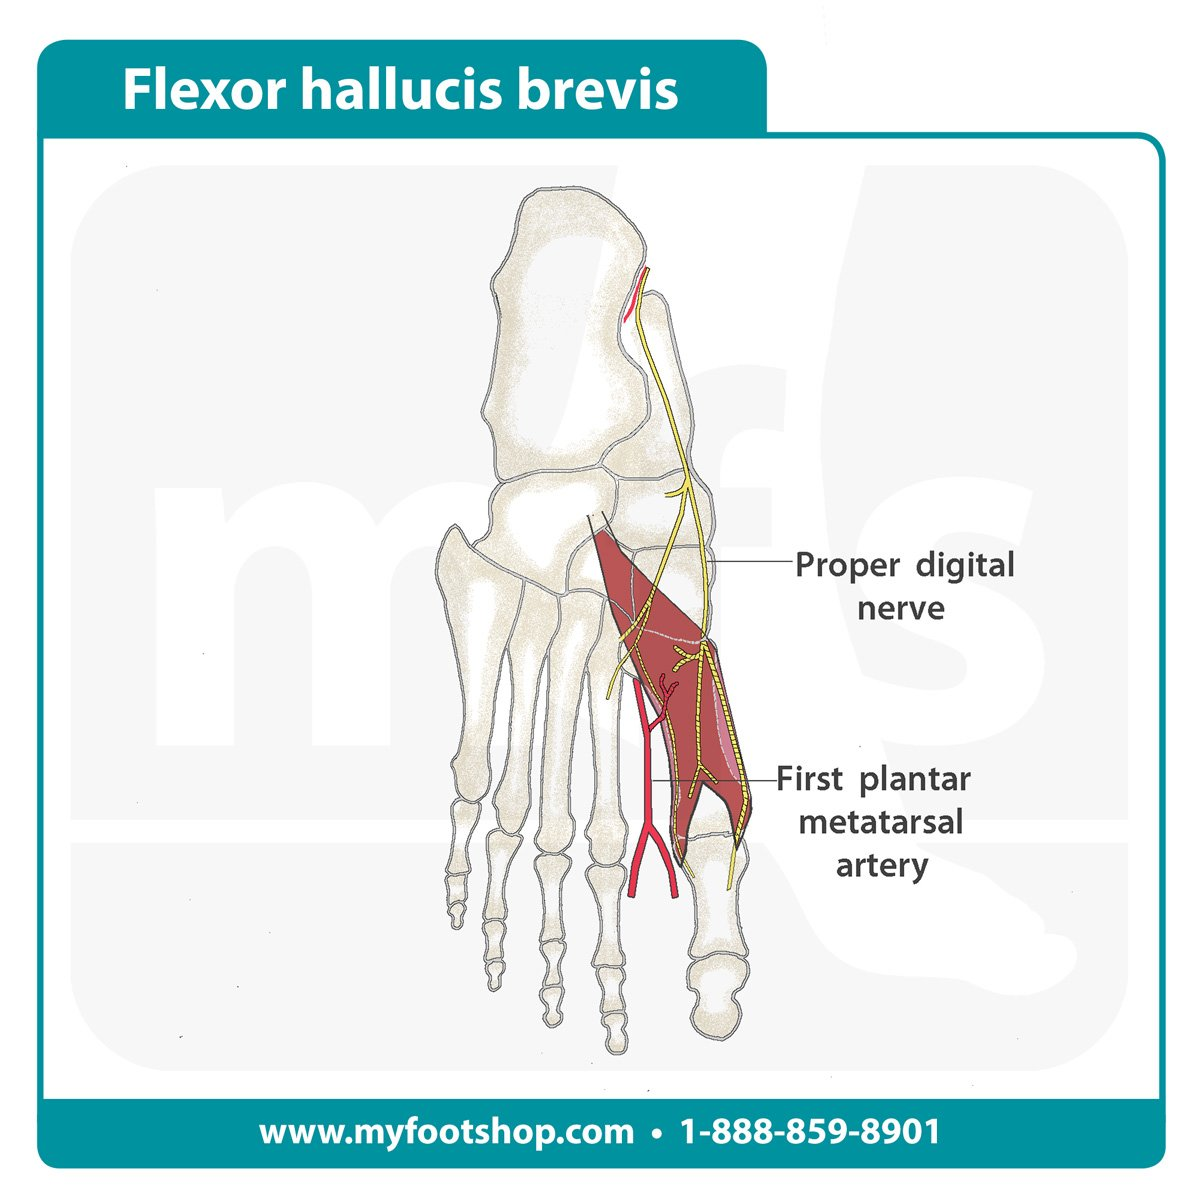 Image of the flexor hallucis brevis muscle